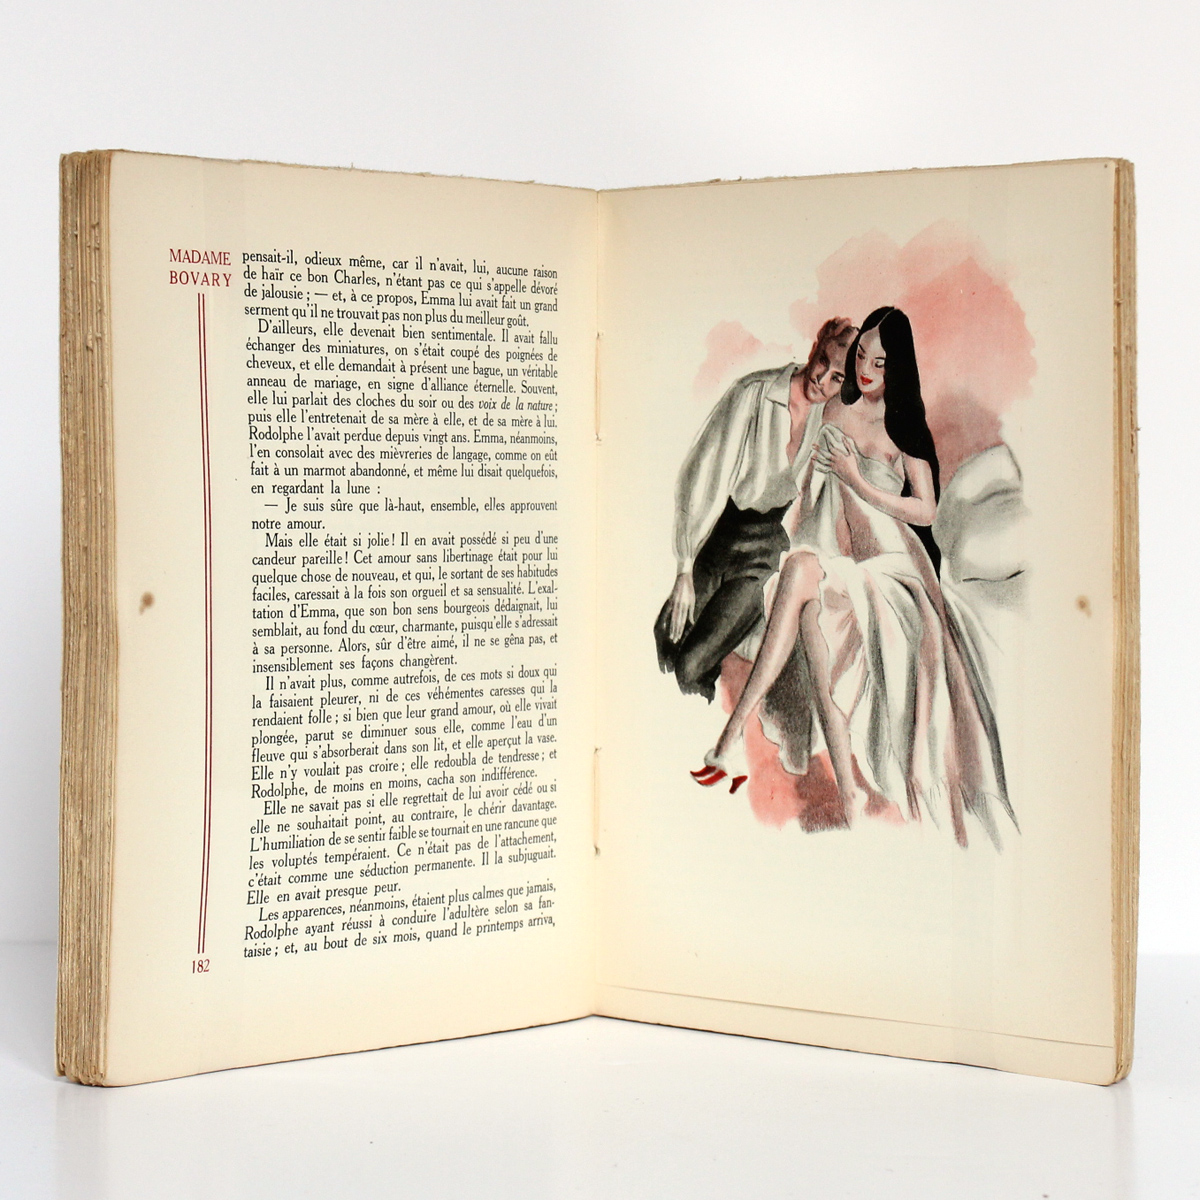 gustave flaubert and madame bovary essay In the novel, 'madame bovary,' gustave flaubert emphasises the importance of  social class: all of the characters have a place in the social hierarchy, with.